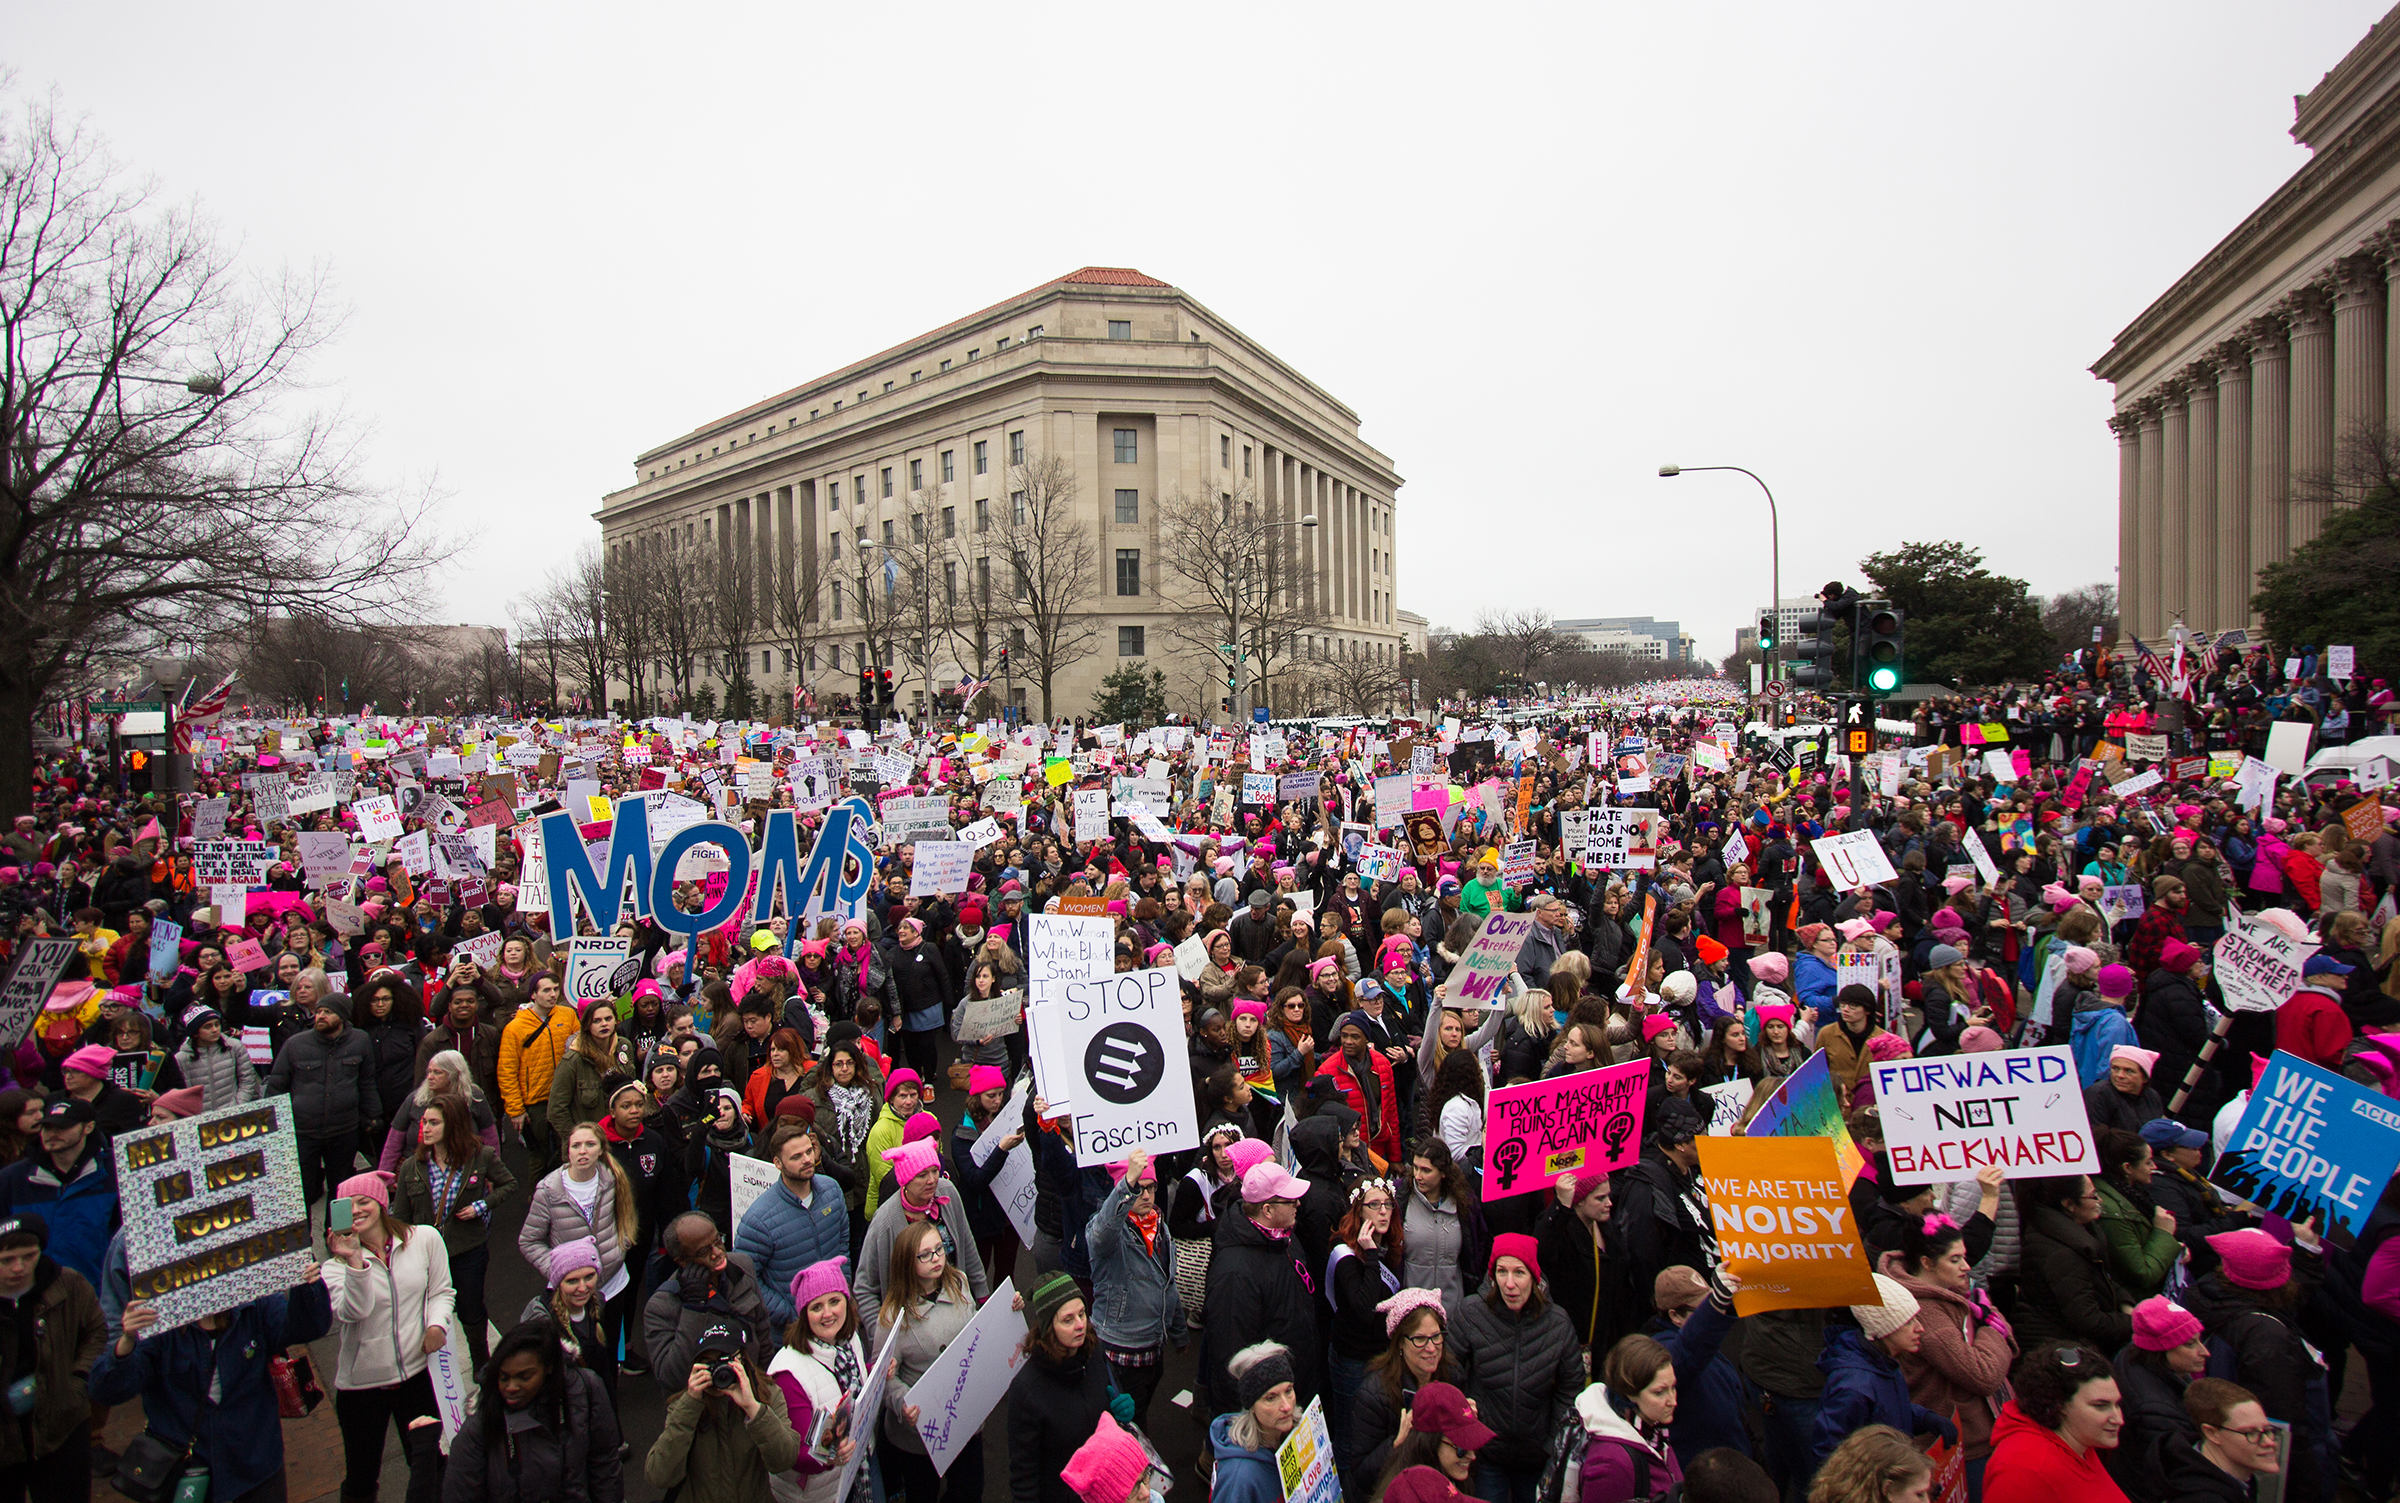 The 2017 Women's March at the intersection of Pennsylvania Avenue and 7th Street in Washington D.C.